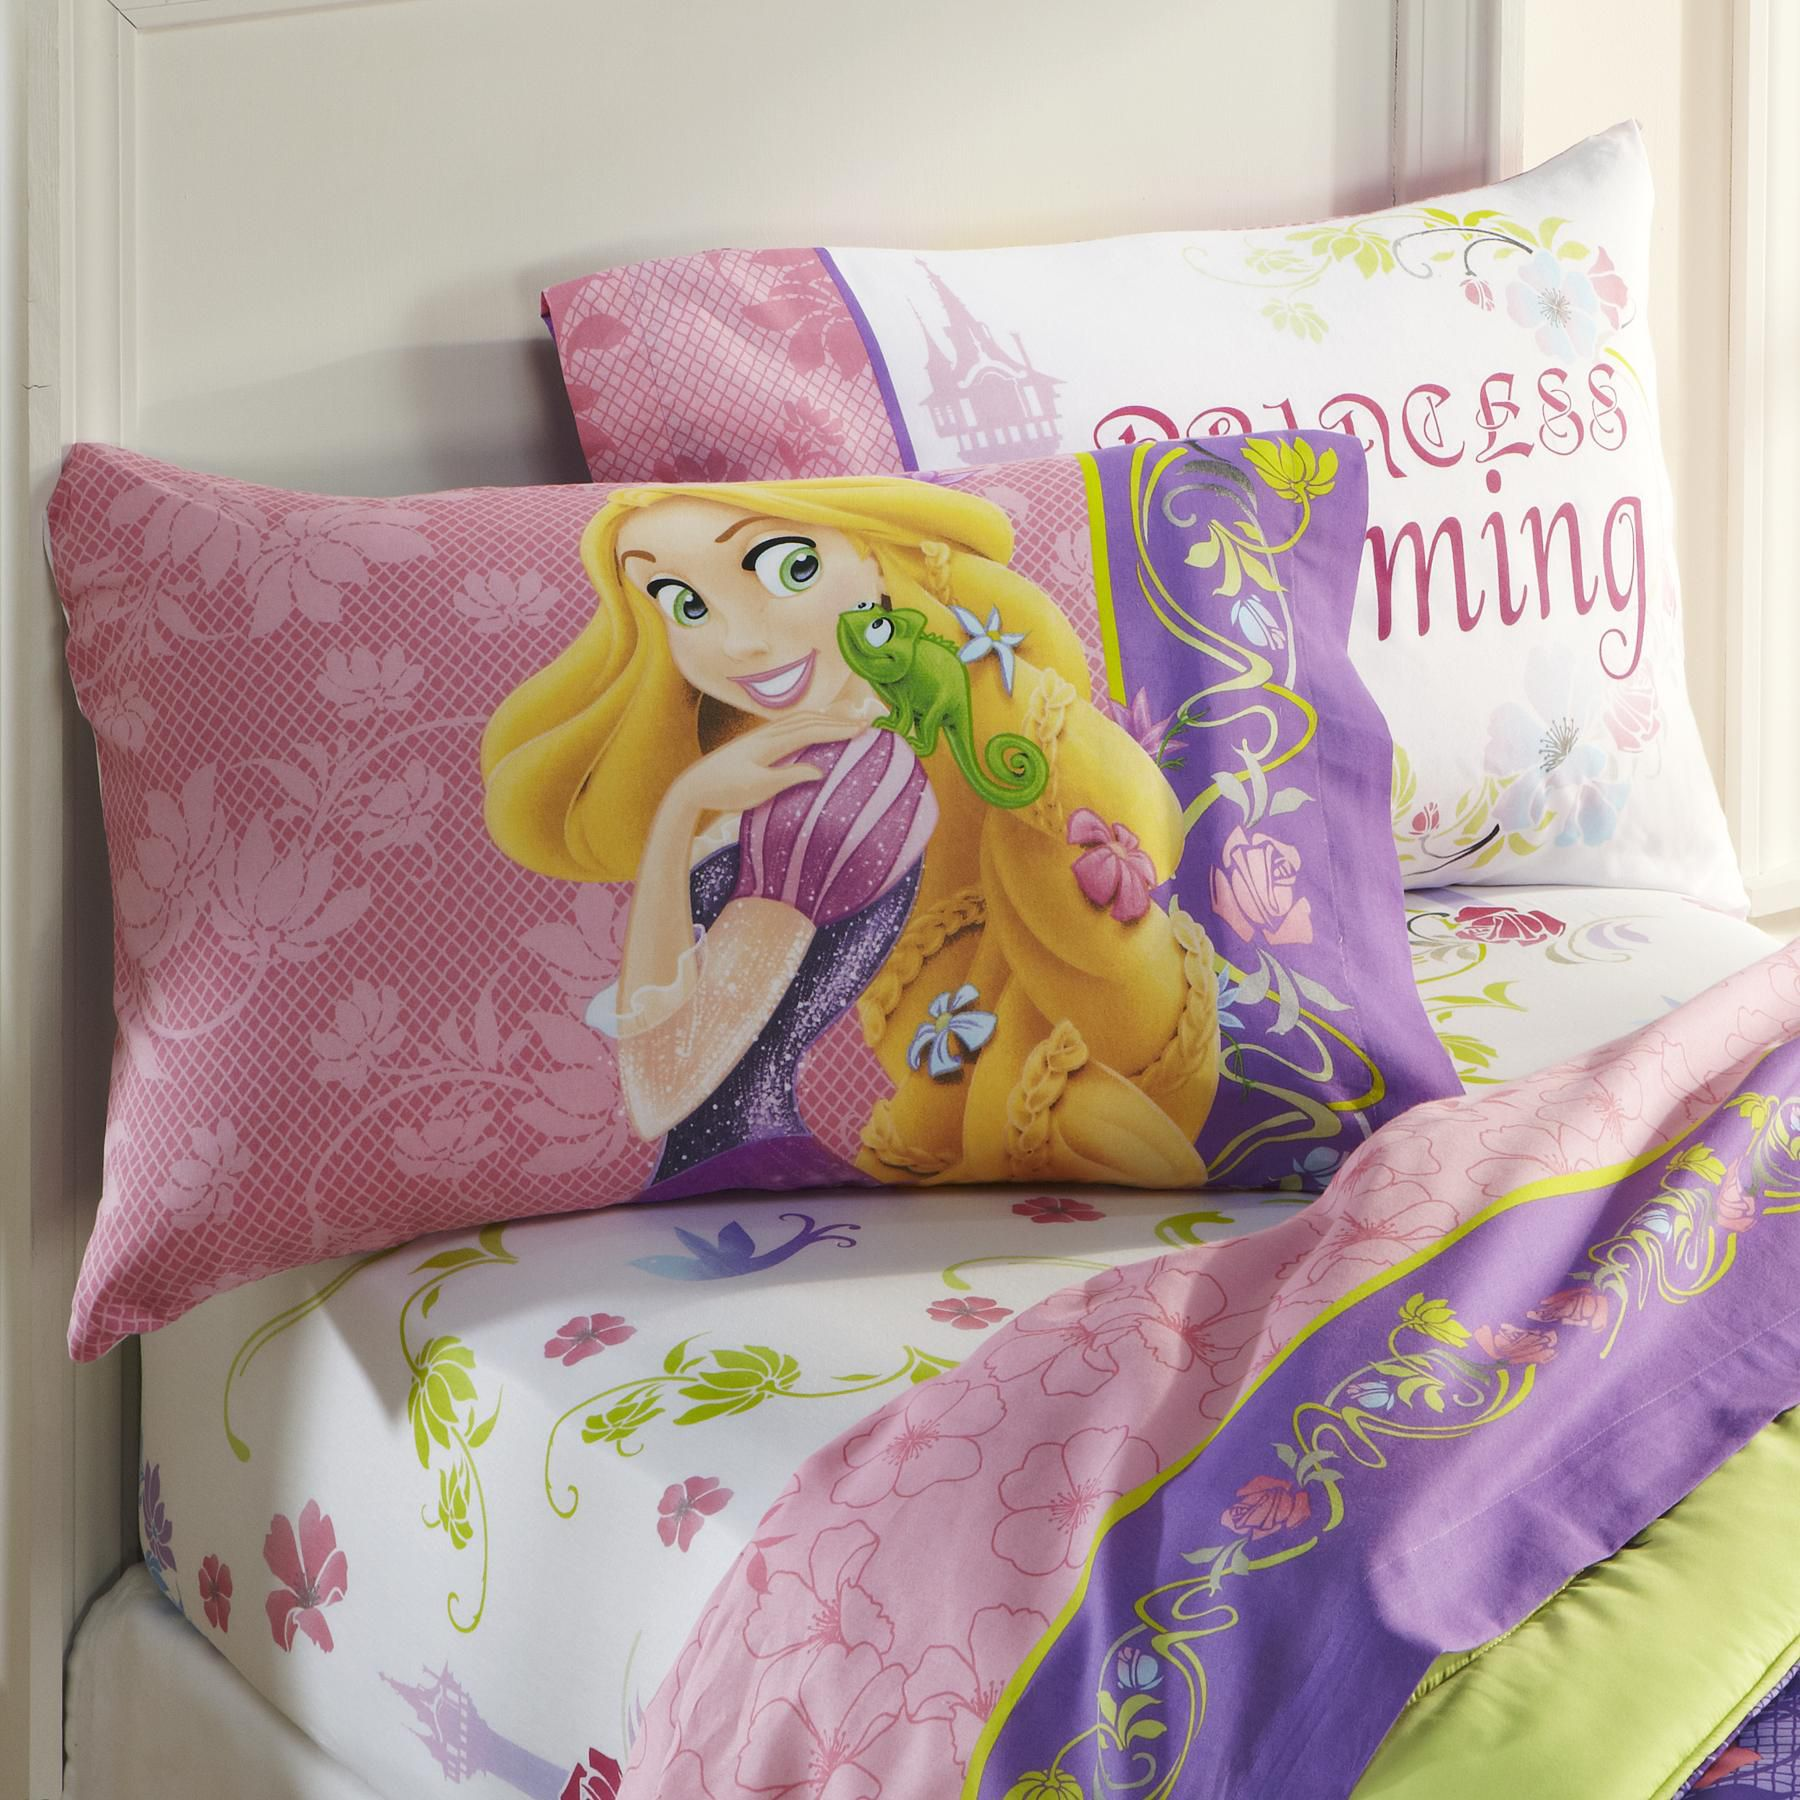 Disney Tangled Reversible Pillowcase